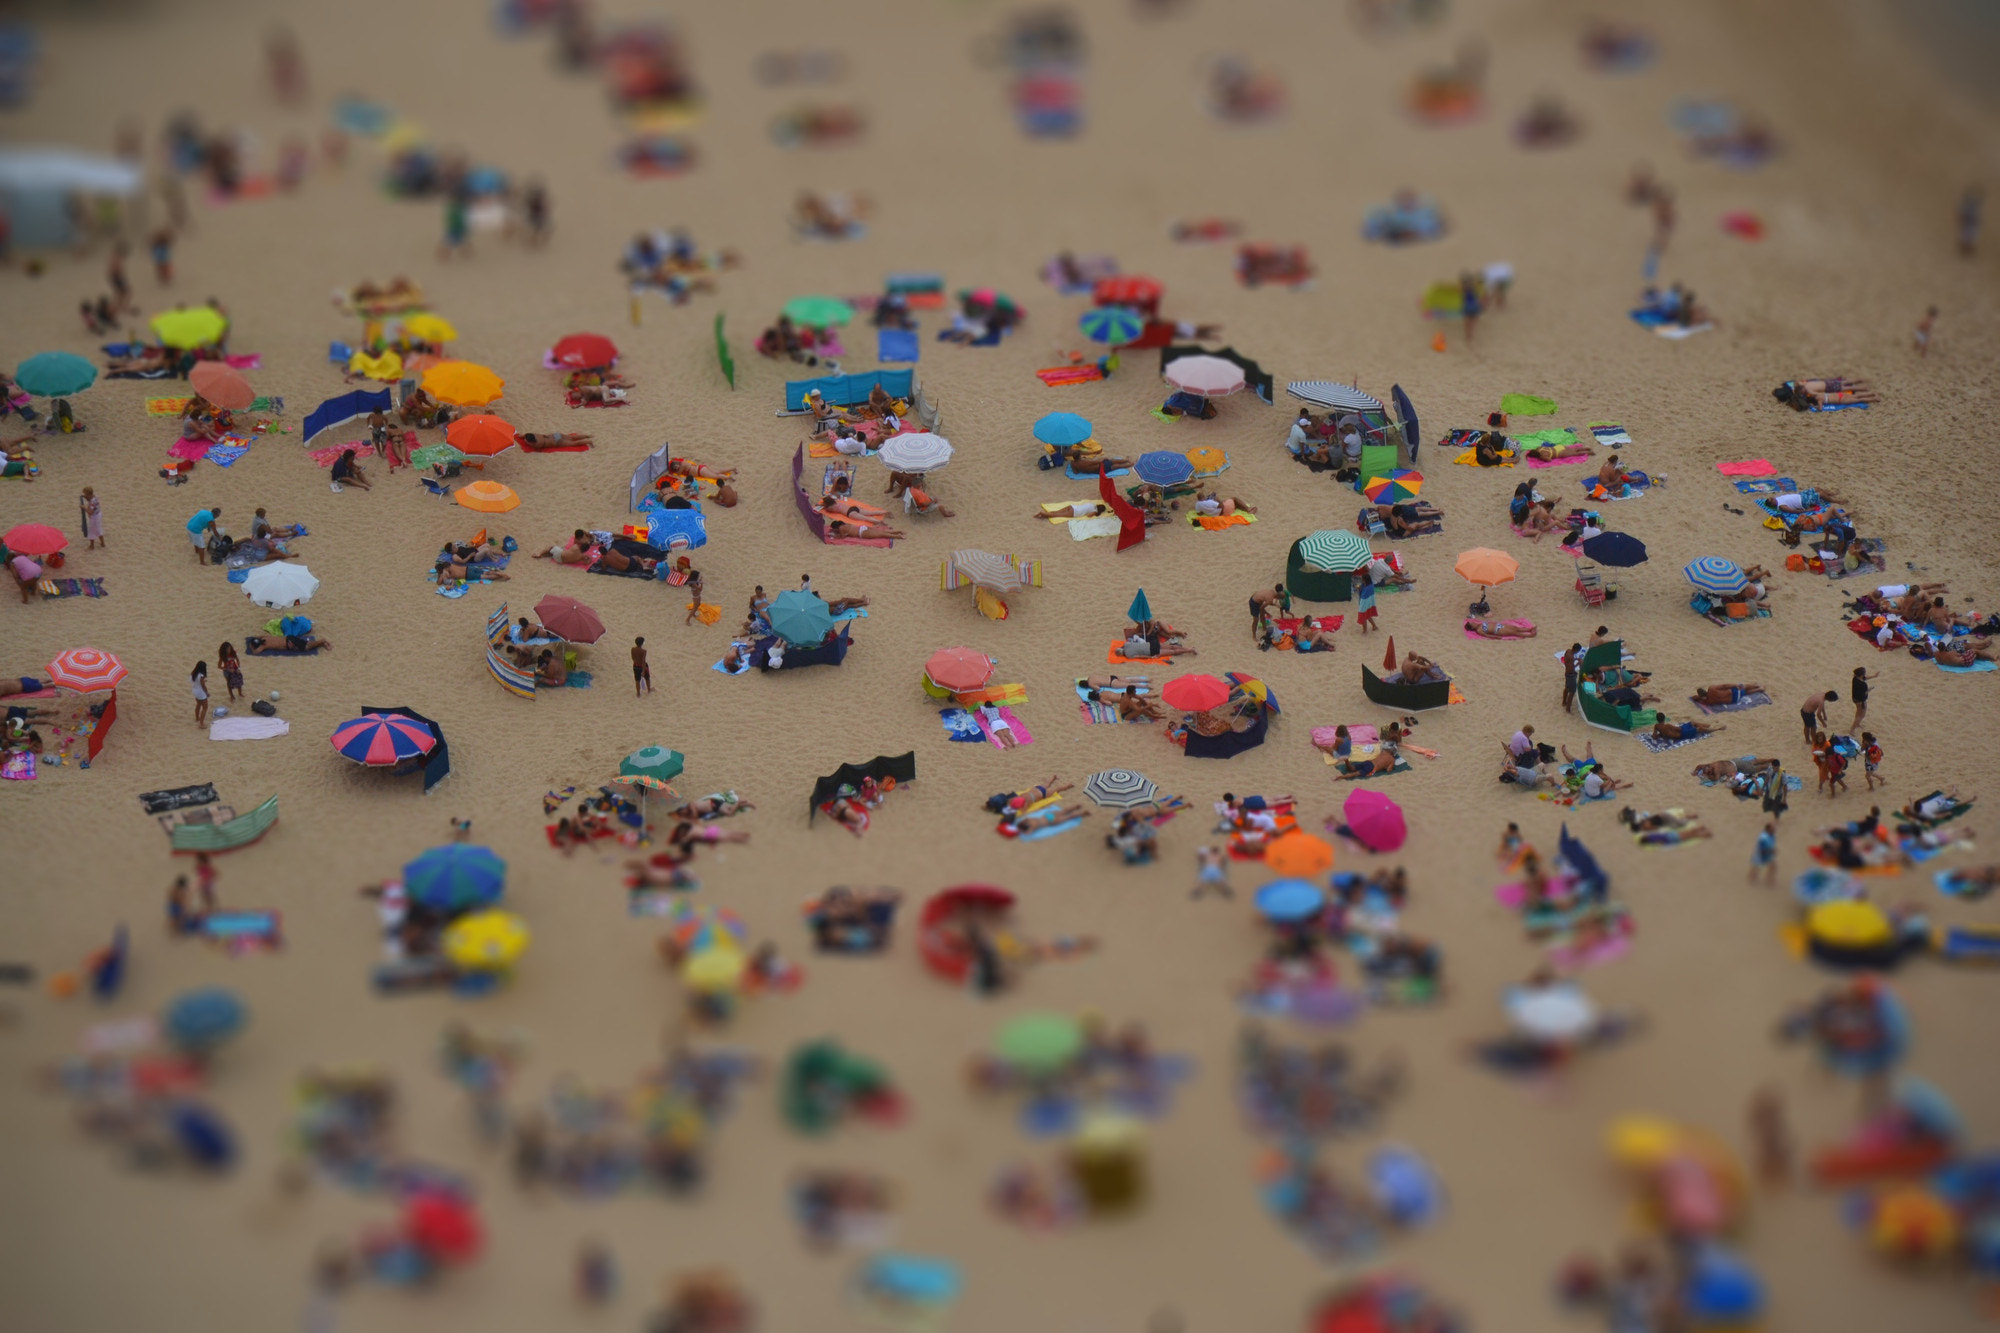 Photograph Plage Tilt-Shift by Johnny Mendes on 500px